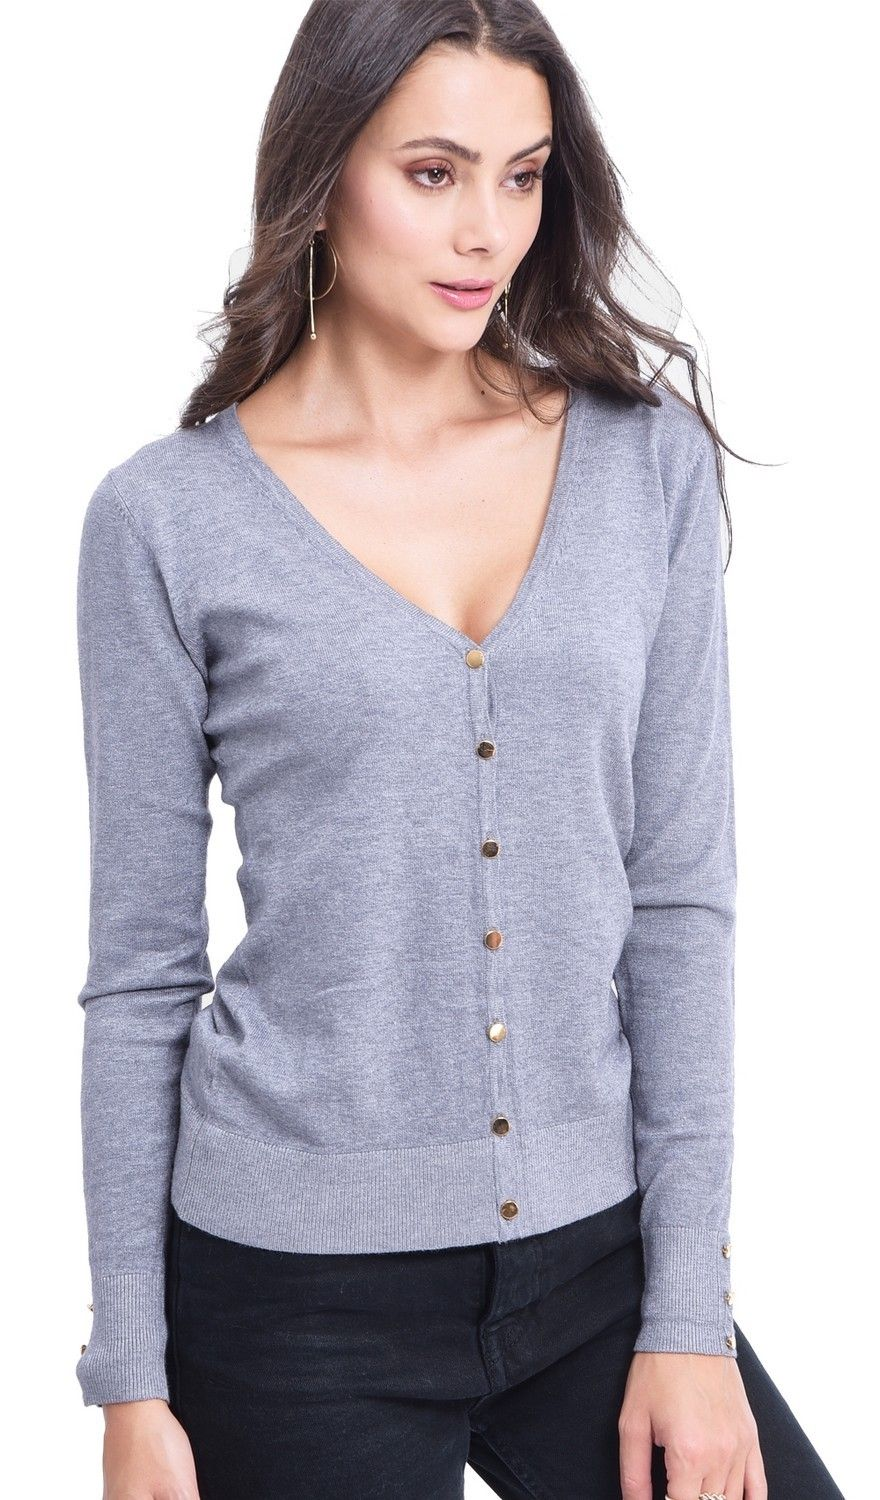 Assuili V-neck Cardigan with Gold Buttons in Grey